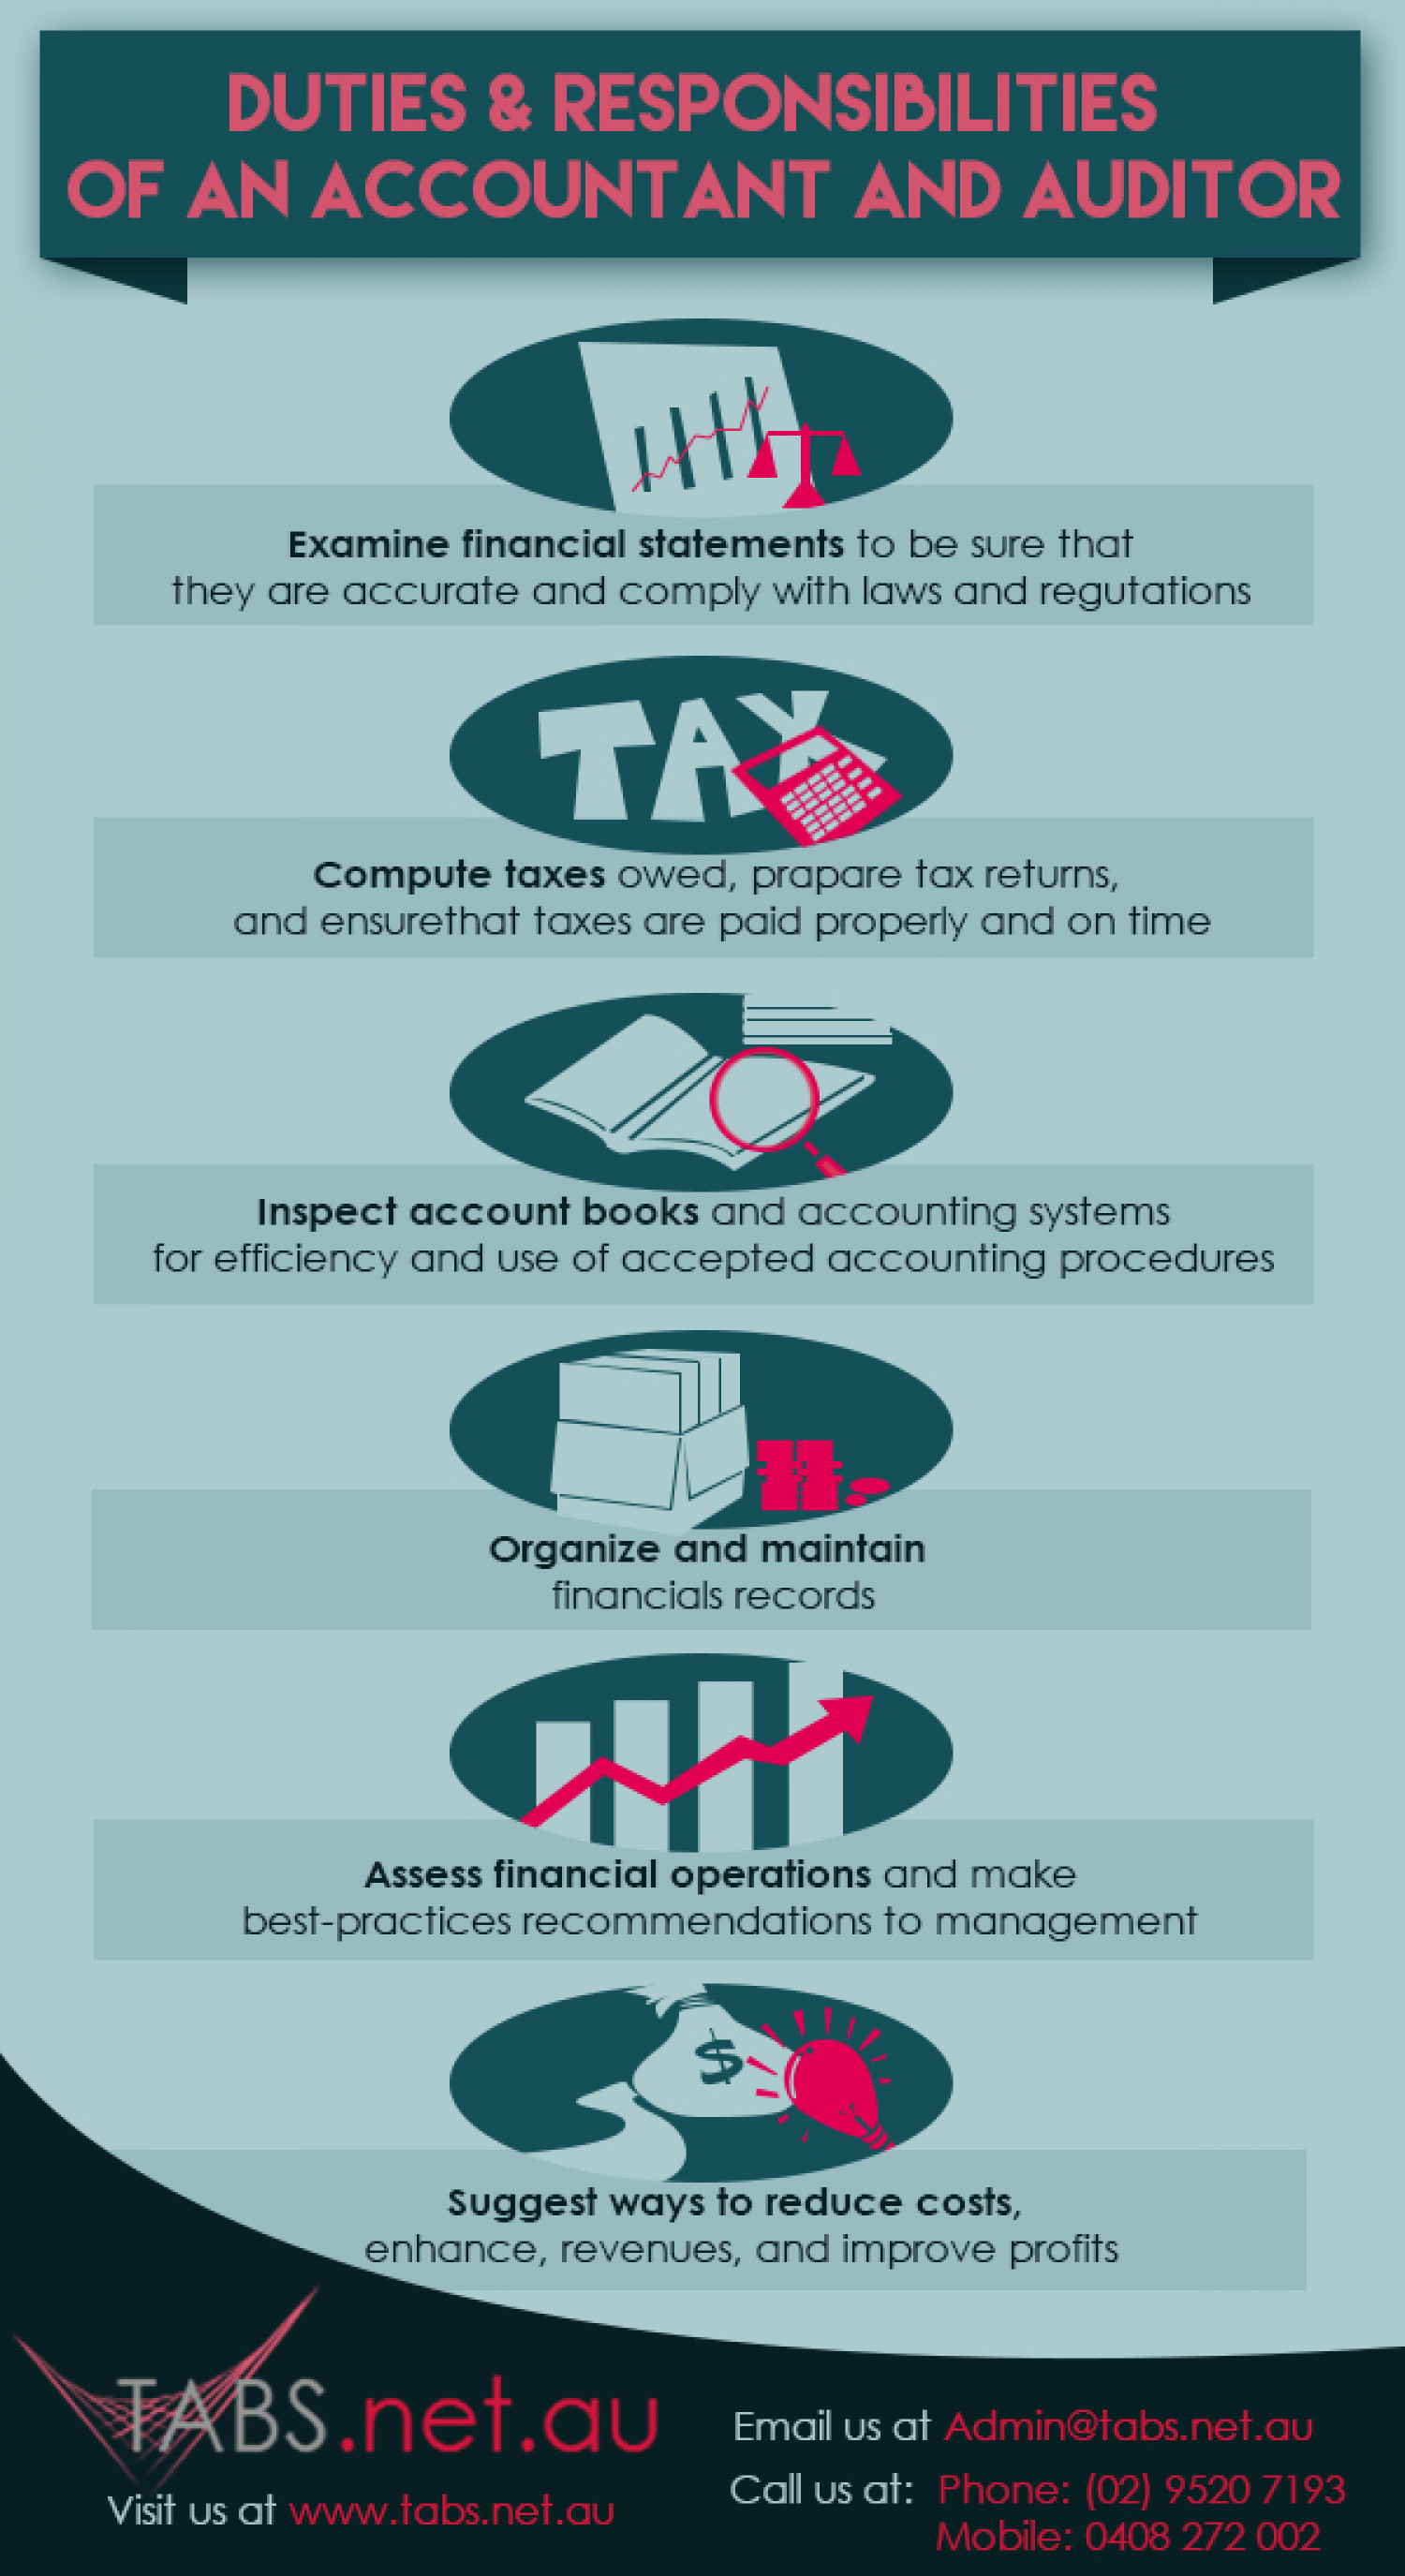 duties responsibilities of an accountant and auditor infographic